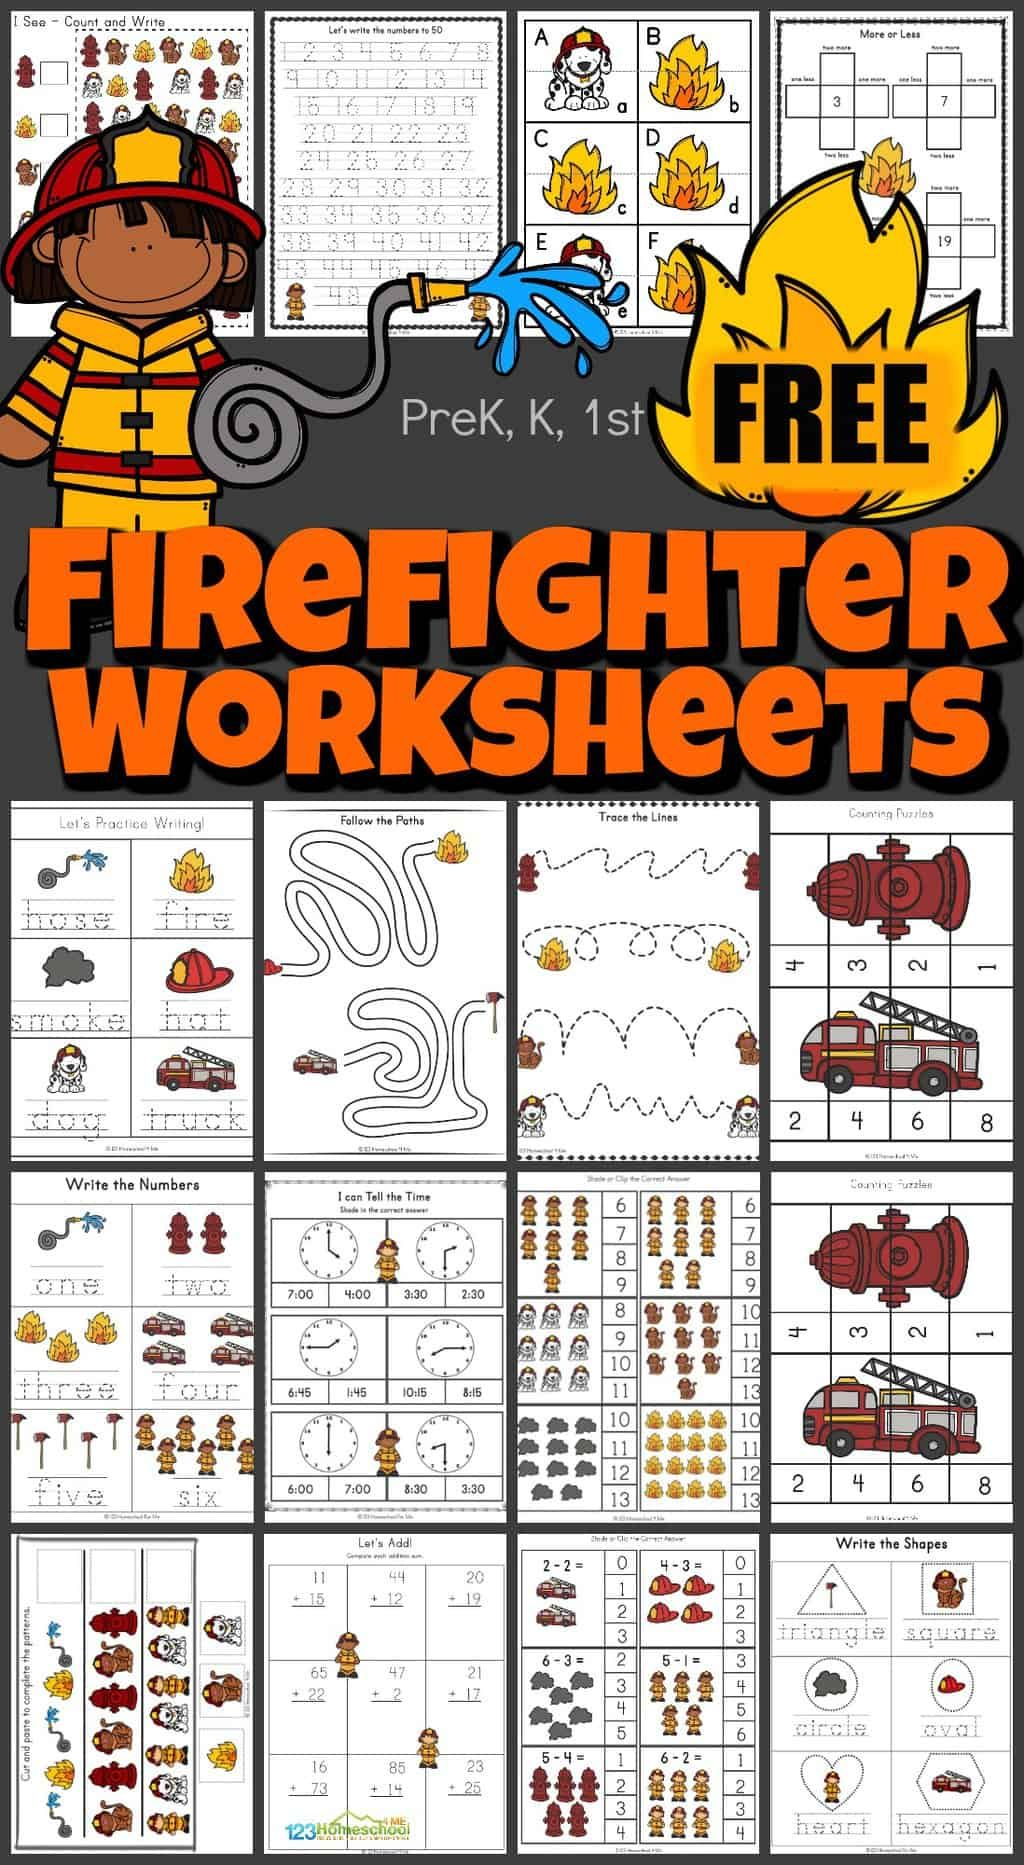 Free Firefighter Worksheets In